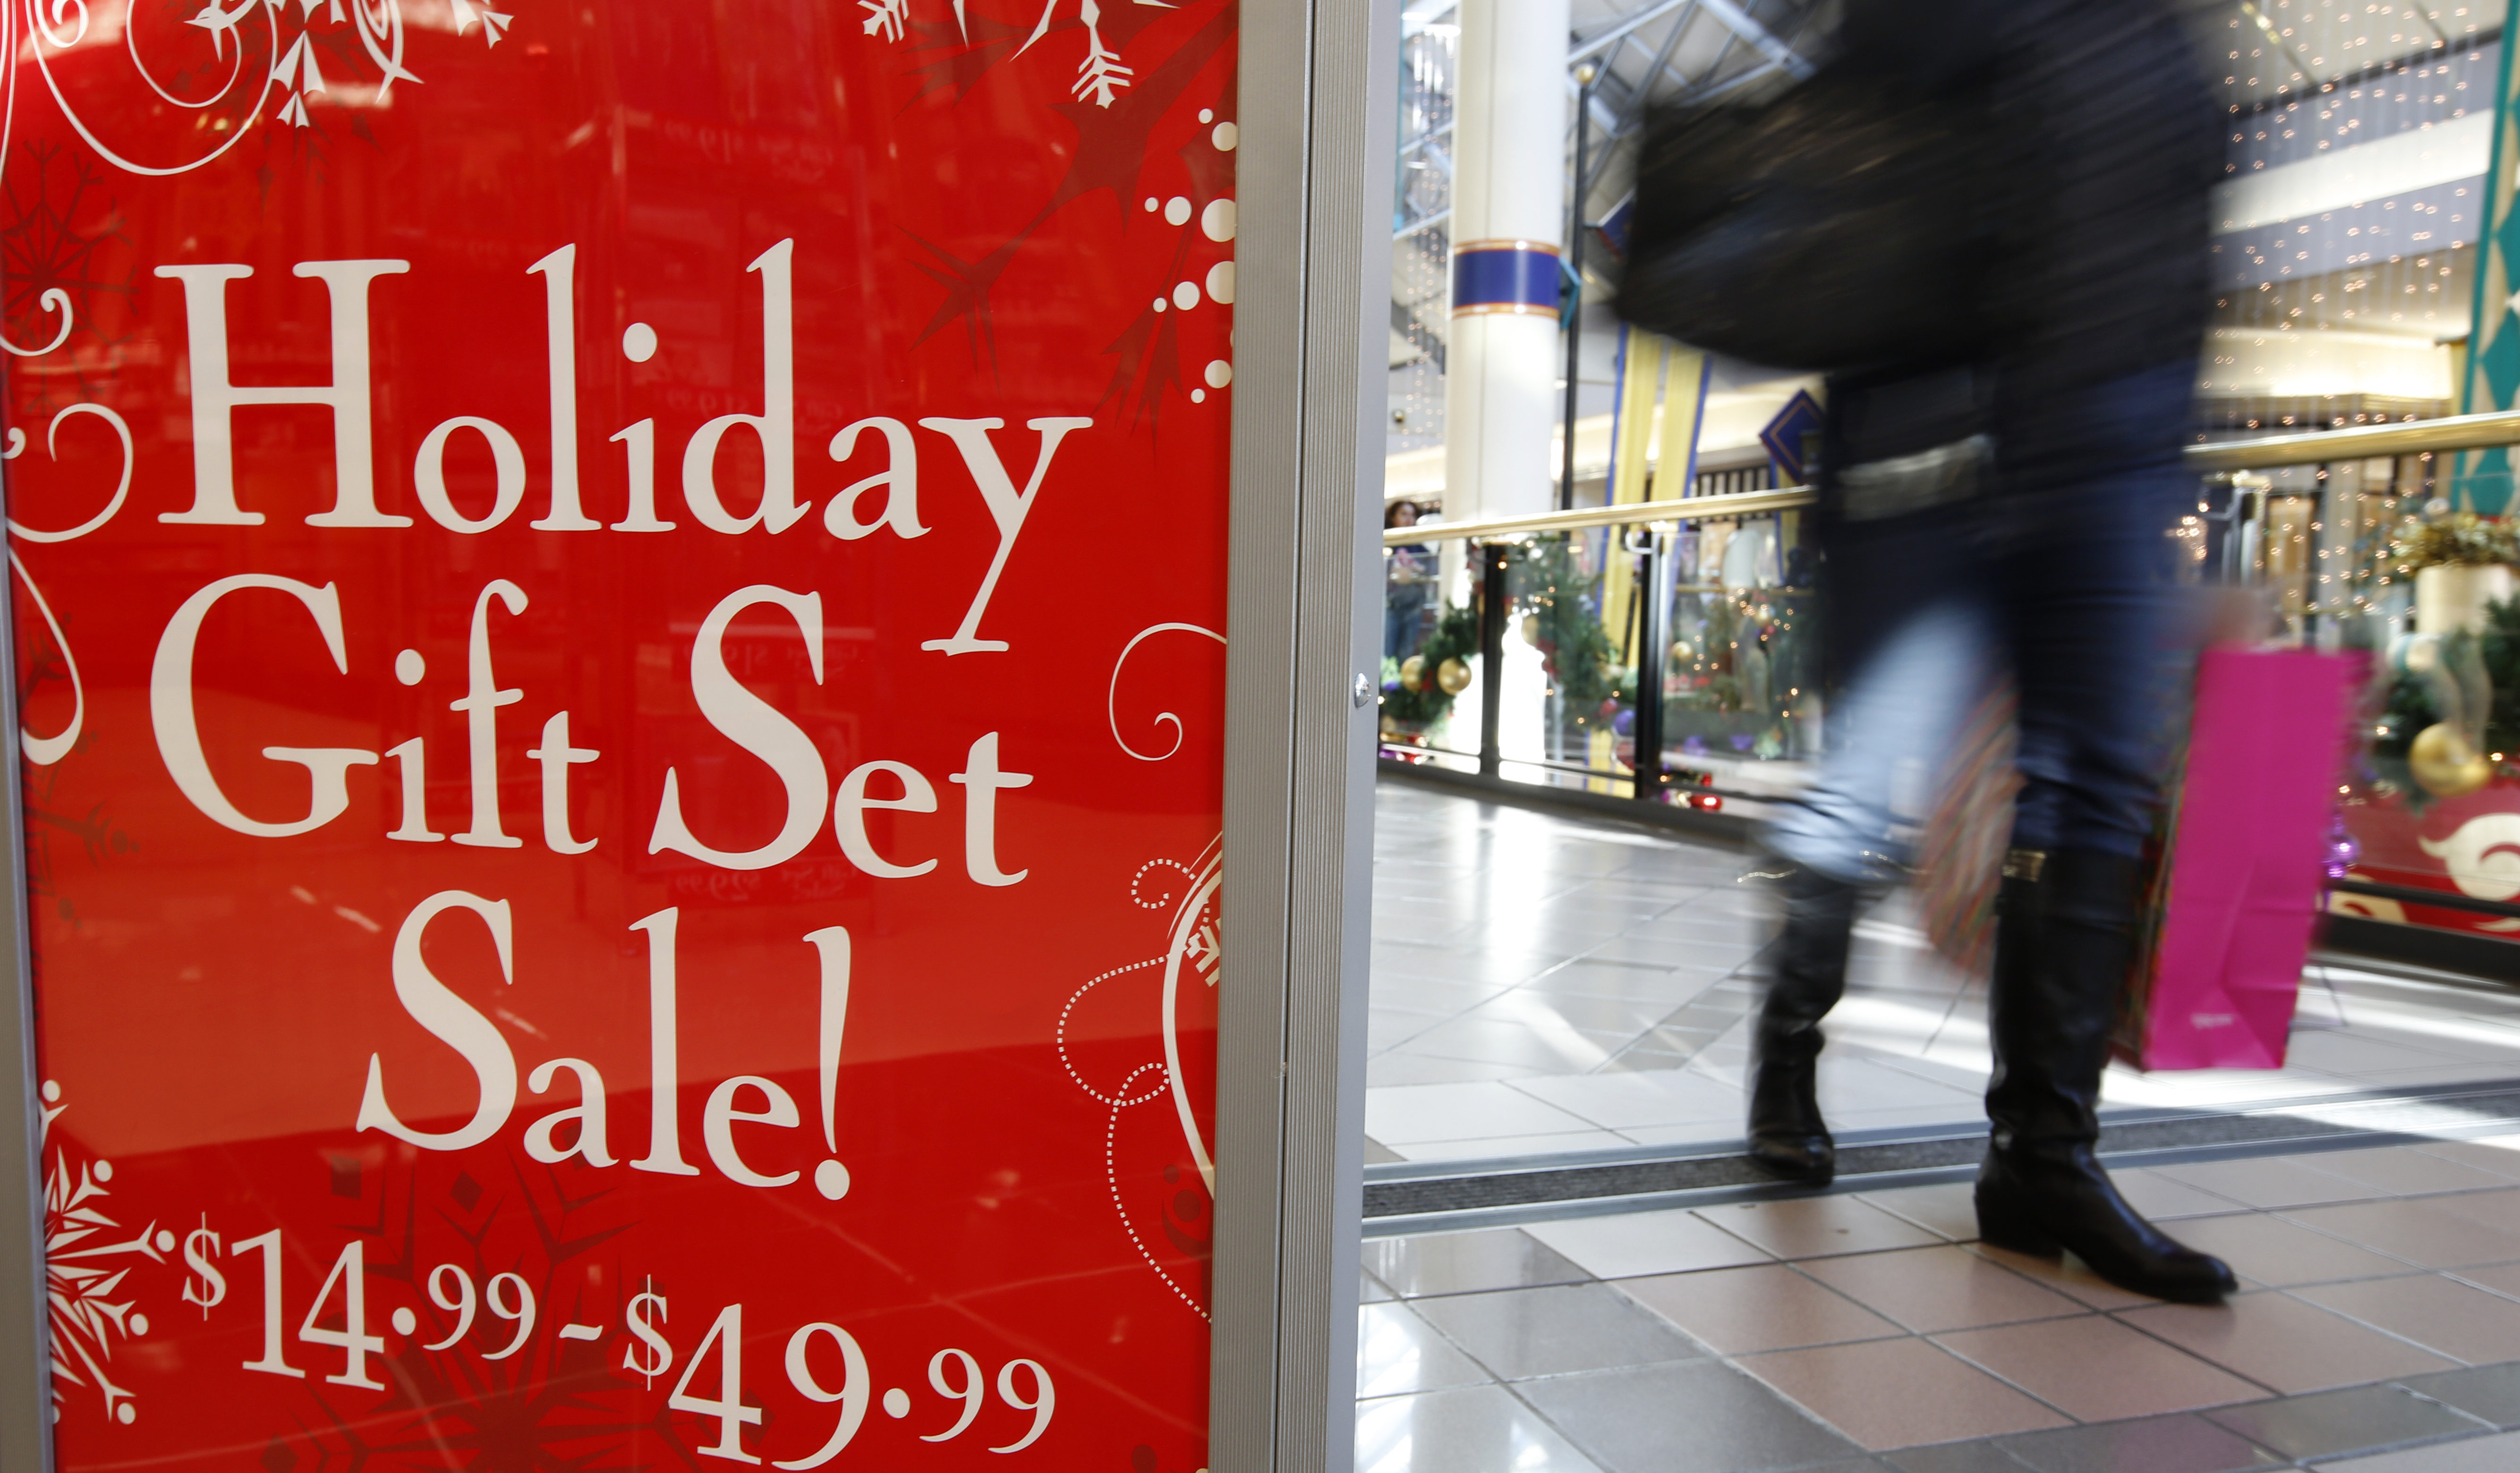 Part 6: Making wise food choices during holiday shopping, travel